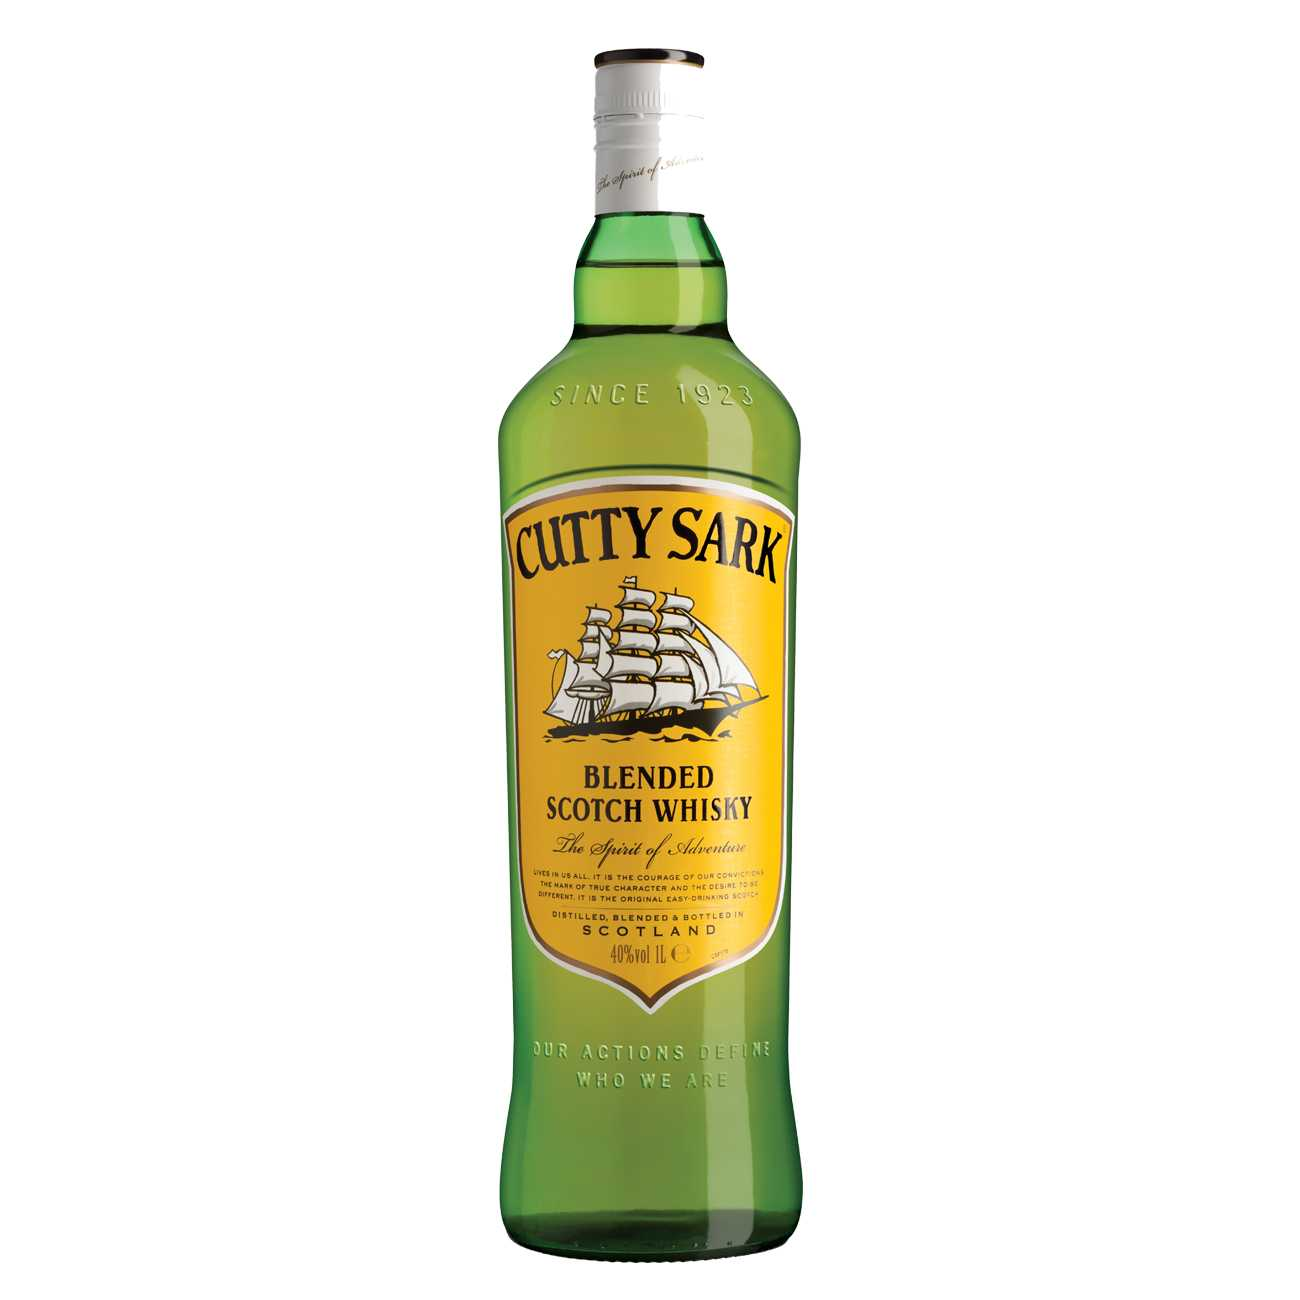 Whisky scotian, THE SPIRIT OF ADVENTURE 1000 ML, Cutty Sark